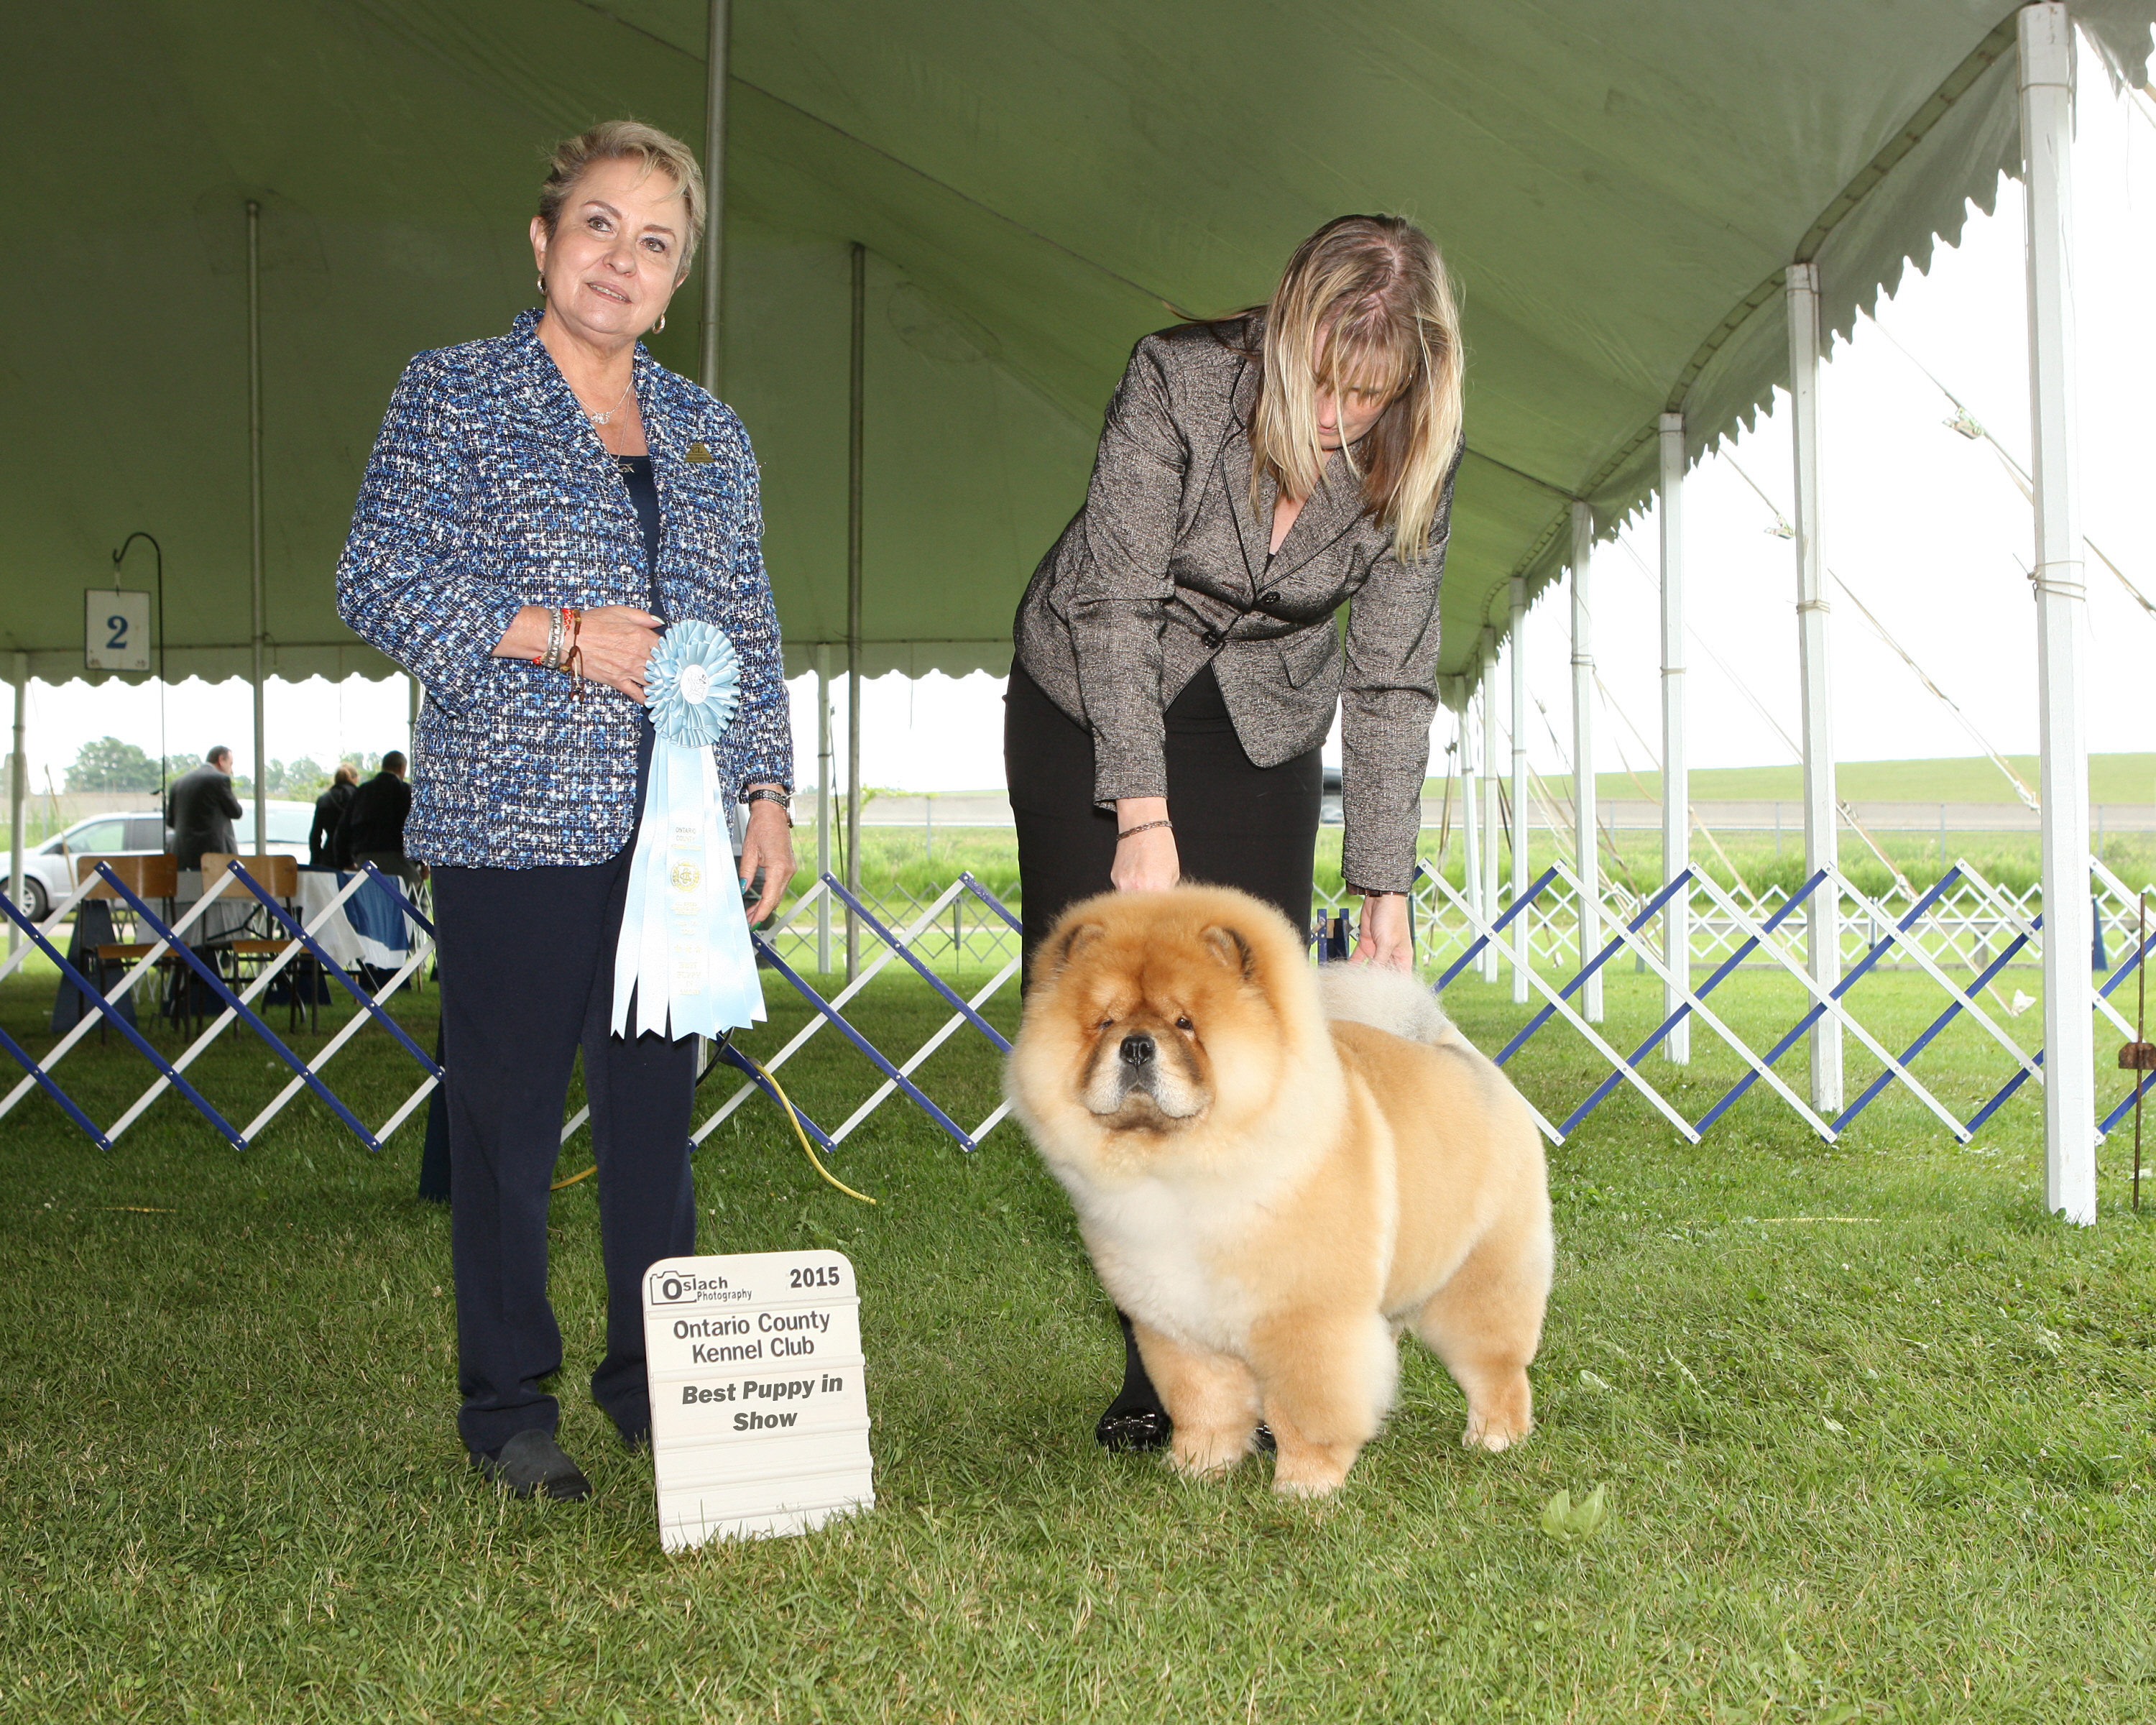 Best Puppy in Show Day 3 - Chow Chow